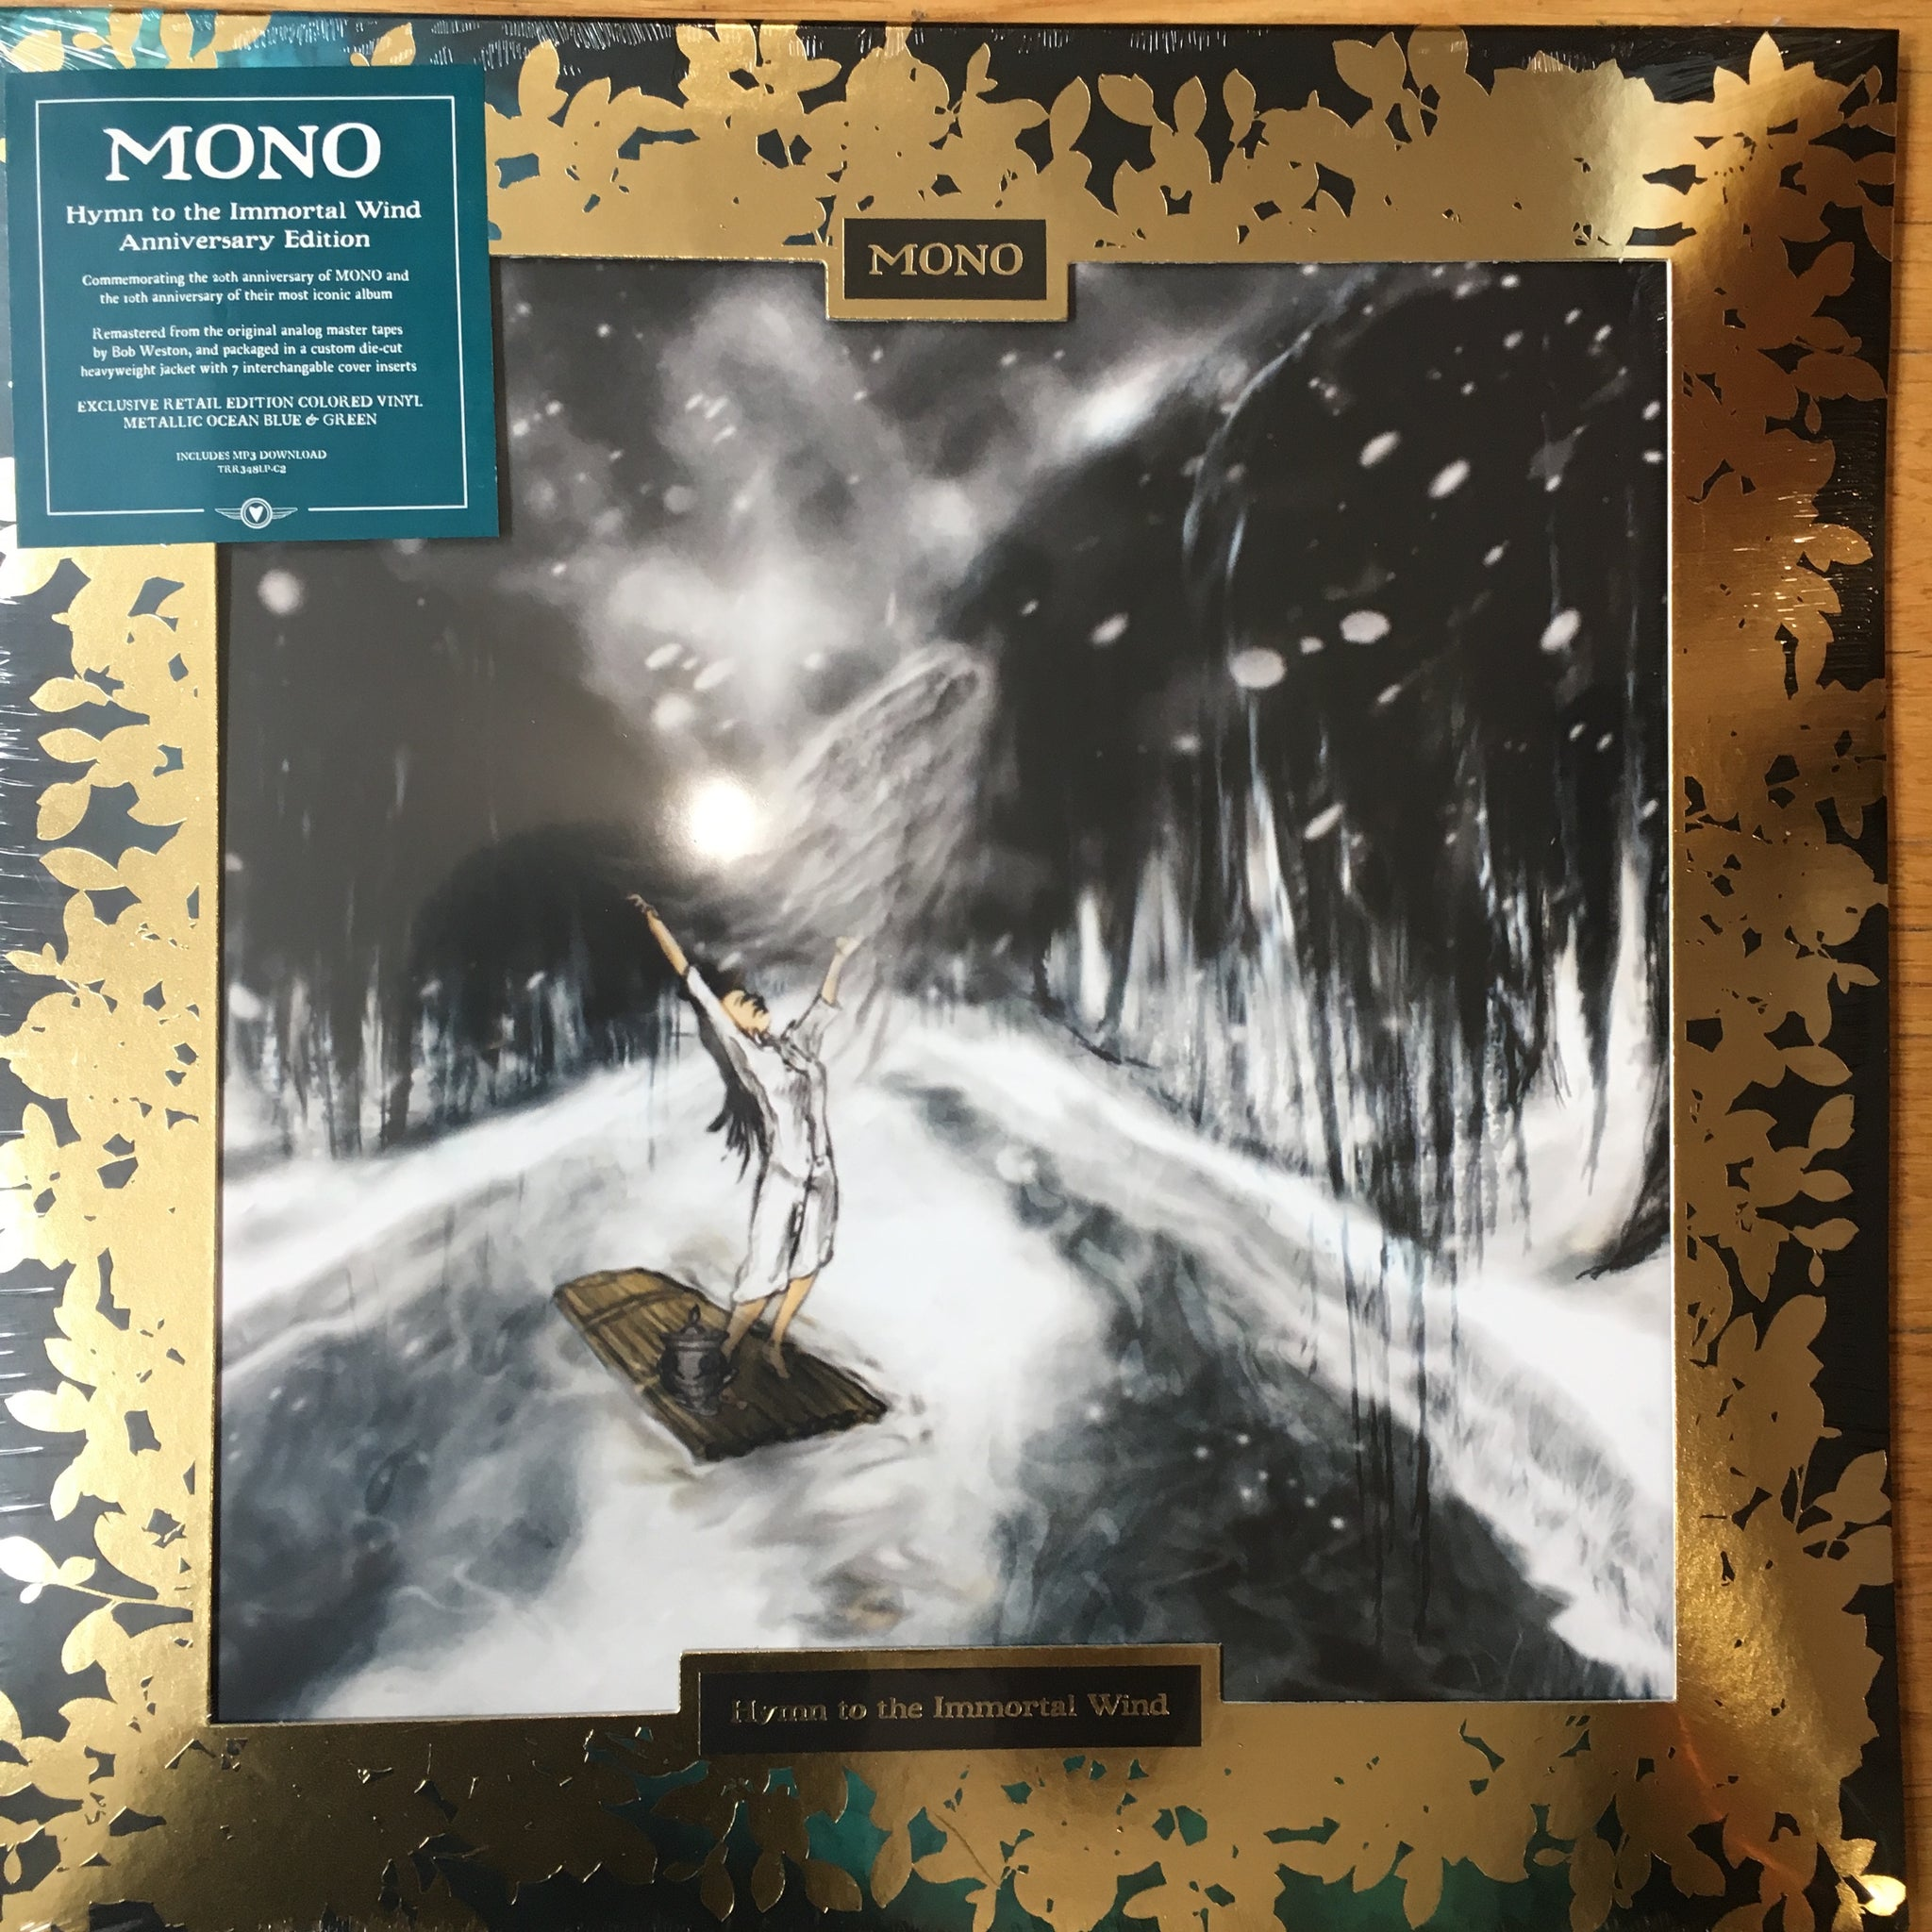 MONO - Hymn To The Immortal Wind (10 Year Anniversary Edition) - New 2 LP Record 2019 Metallic Blue-Green  Vinyl - Post Rock / Noise